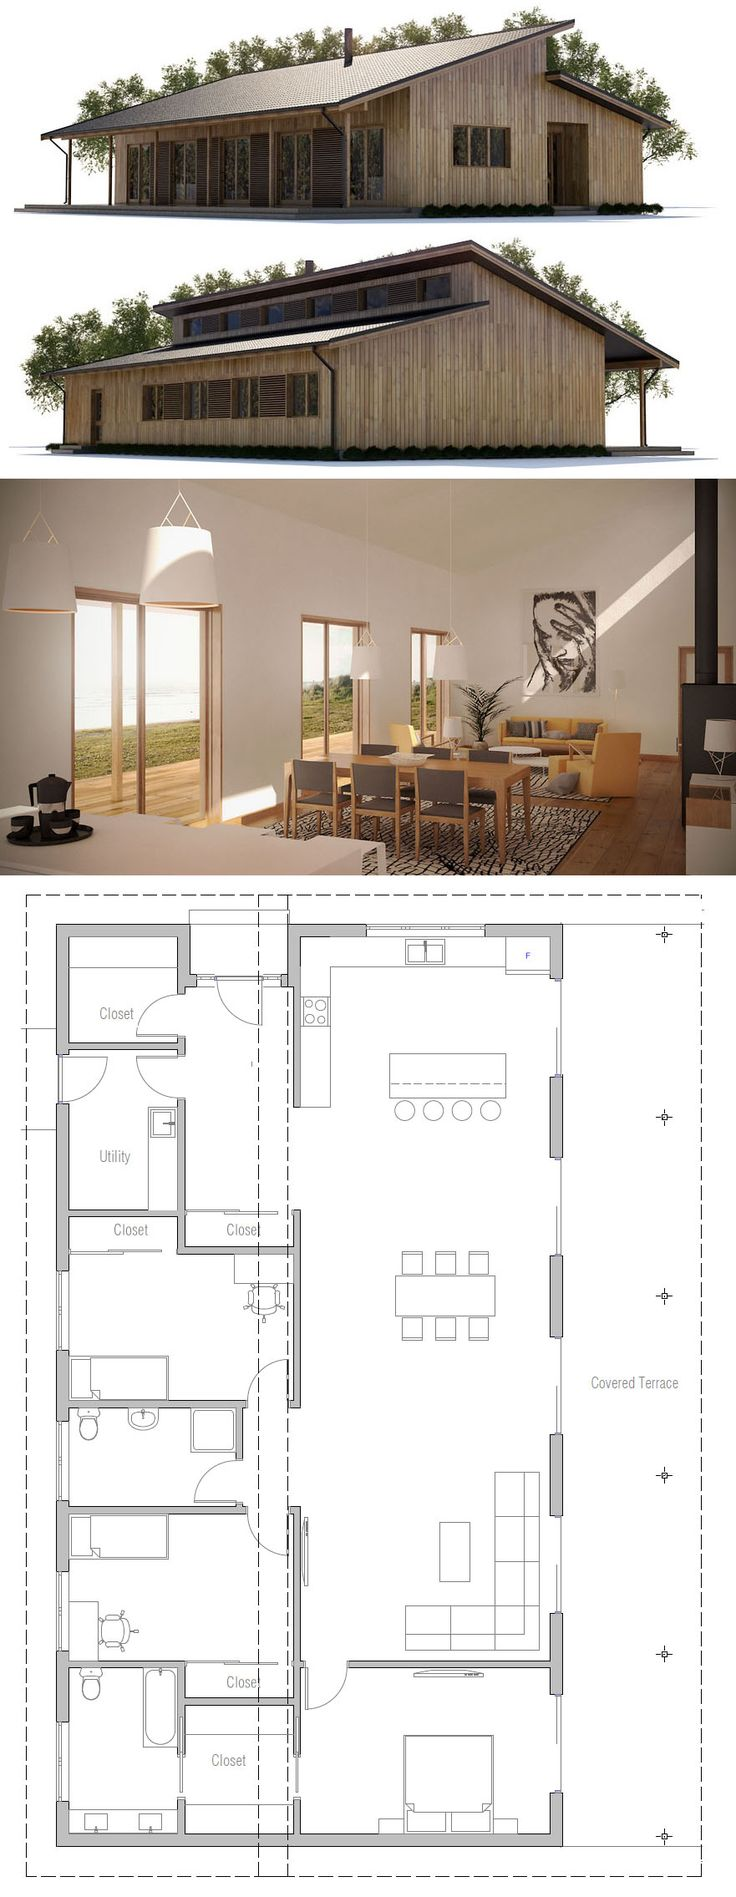 Small house design on terrace house plan design house design ideas 0d - Plan Might Have Some Thing We Can Borrow Like The Master Bedroom Robe Bathroom Combo Find This Pin And More On Home Plans